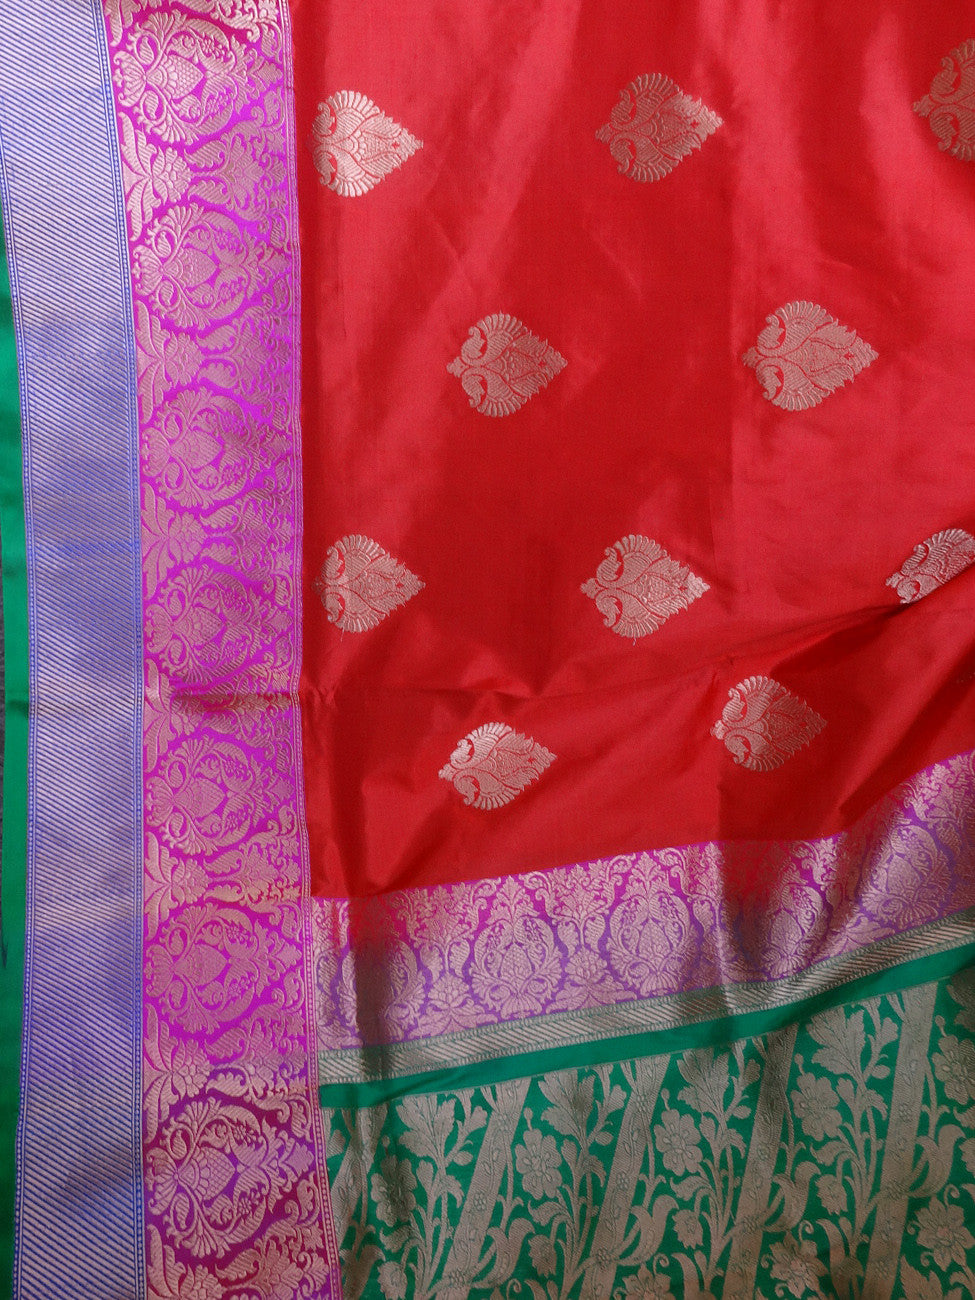 Banarasee/Banarasee Handloom Pure Katan Silk Sari With Skirt Border-Red